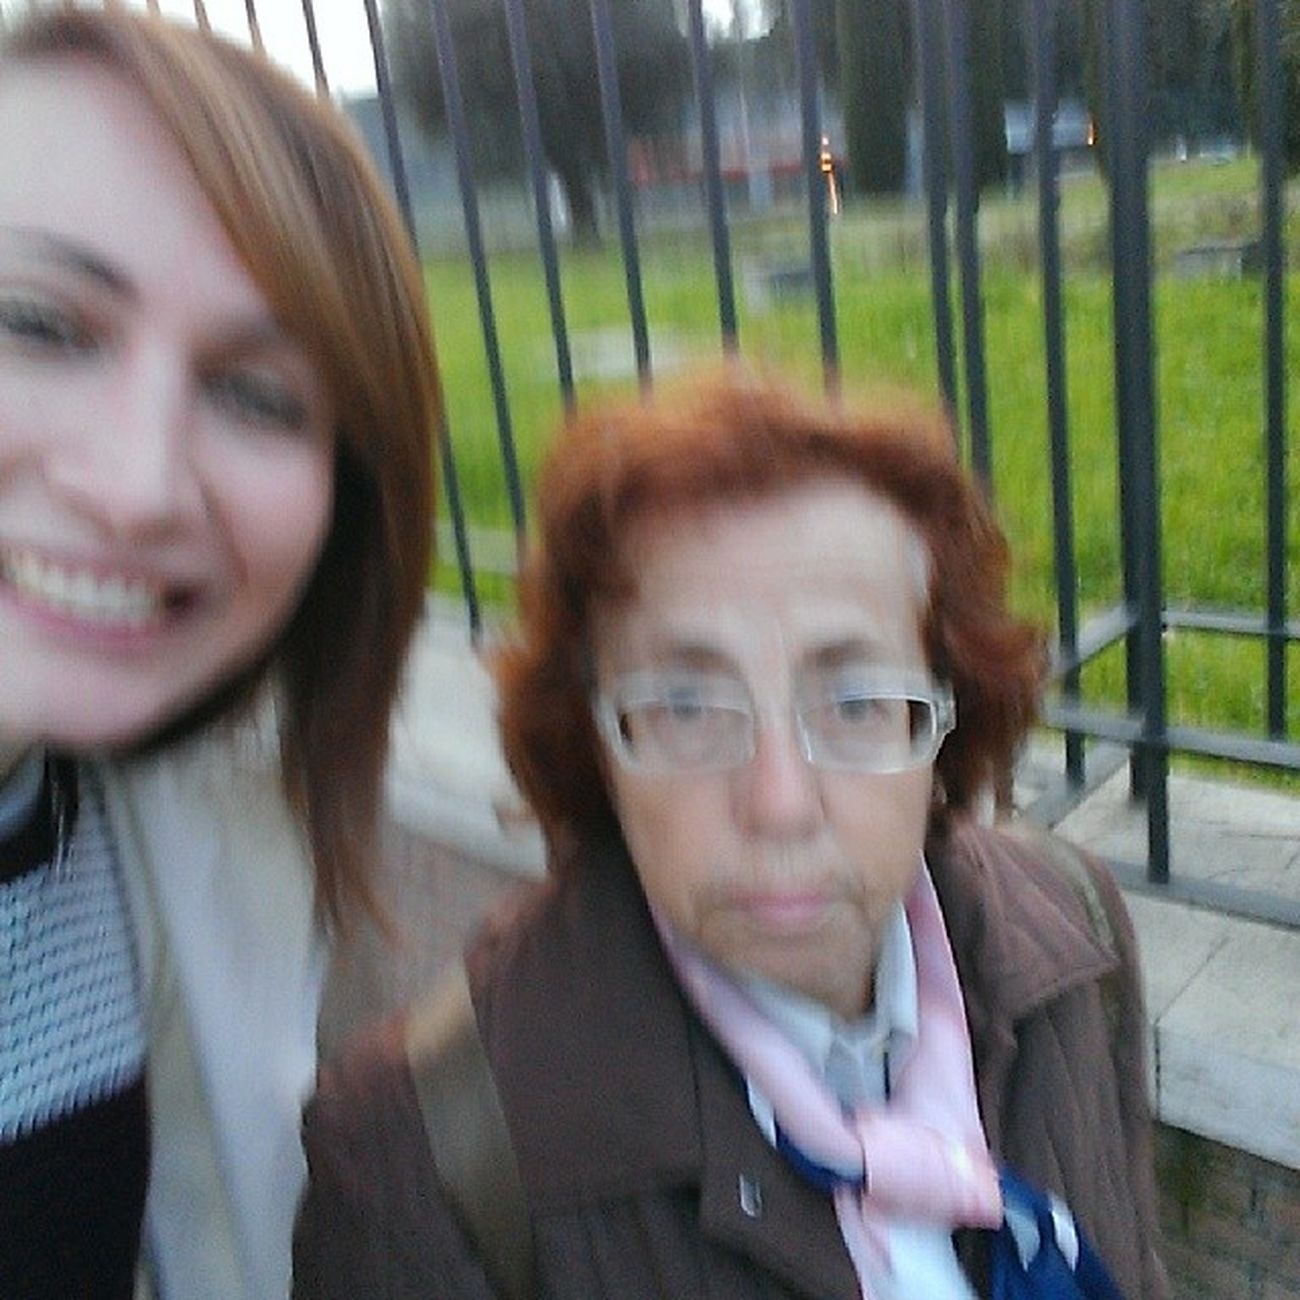 I think I pissed this woman off, as she started chasing me down the street shouting in Italian at me! Hahahaha Selfieswithstrangers